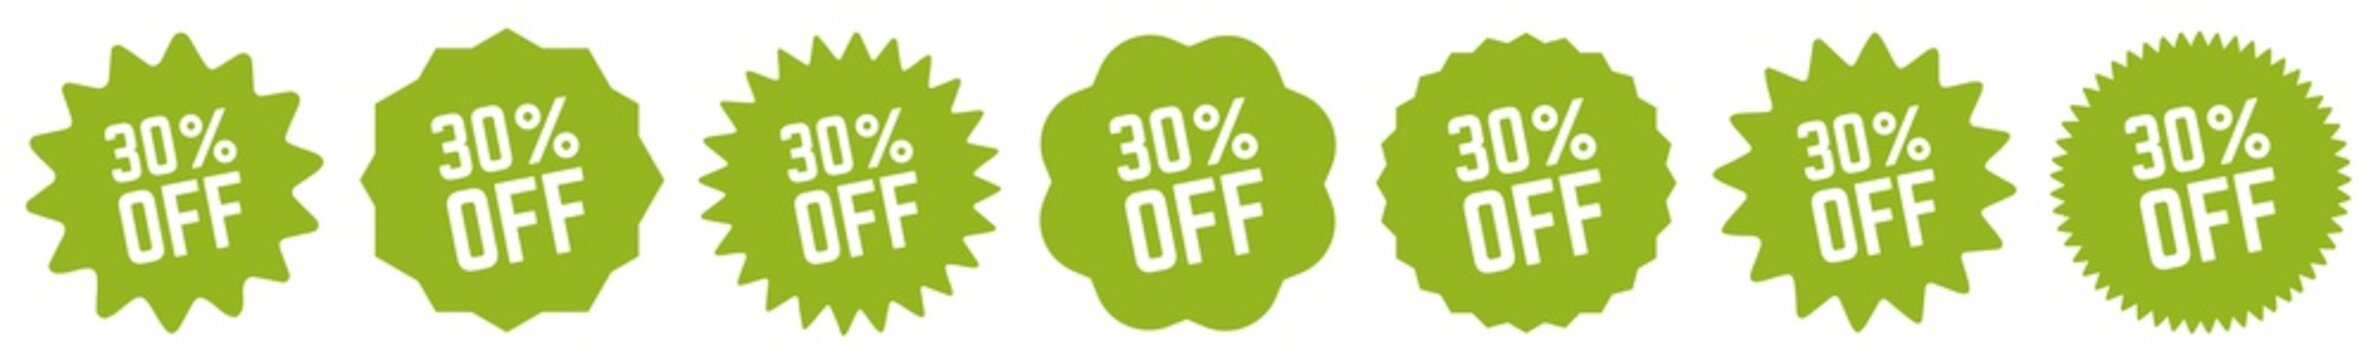 30 Percent OFF Discount Tag Green Eco | Special Offer Icon | Sale Sticker | Deal Label | Variations